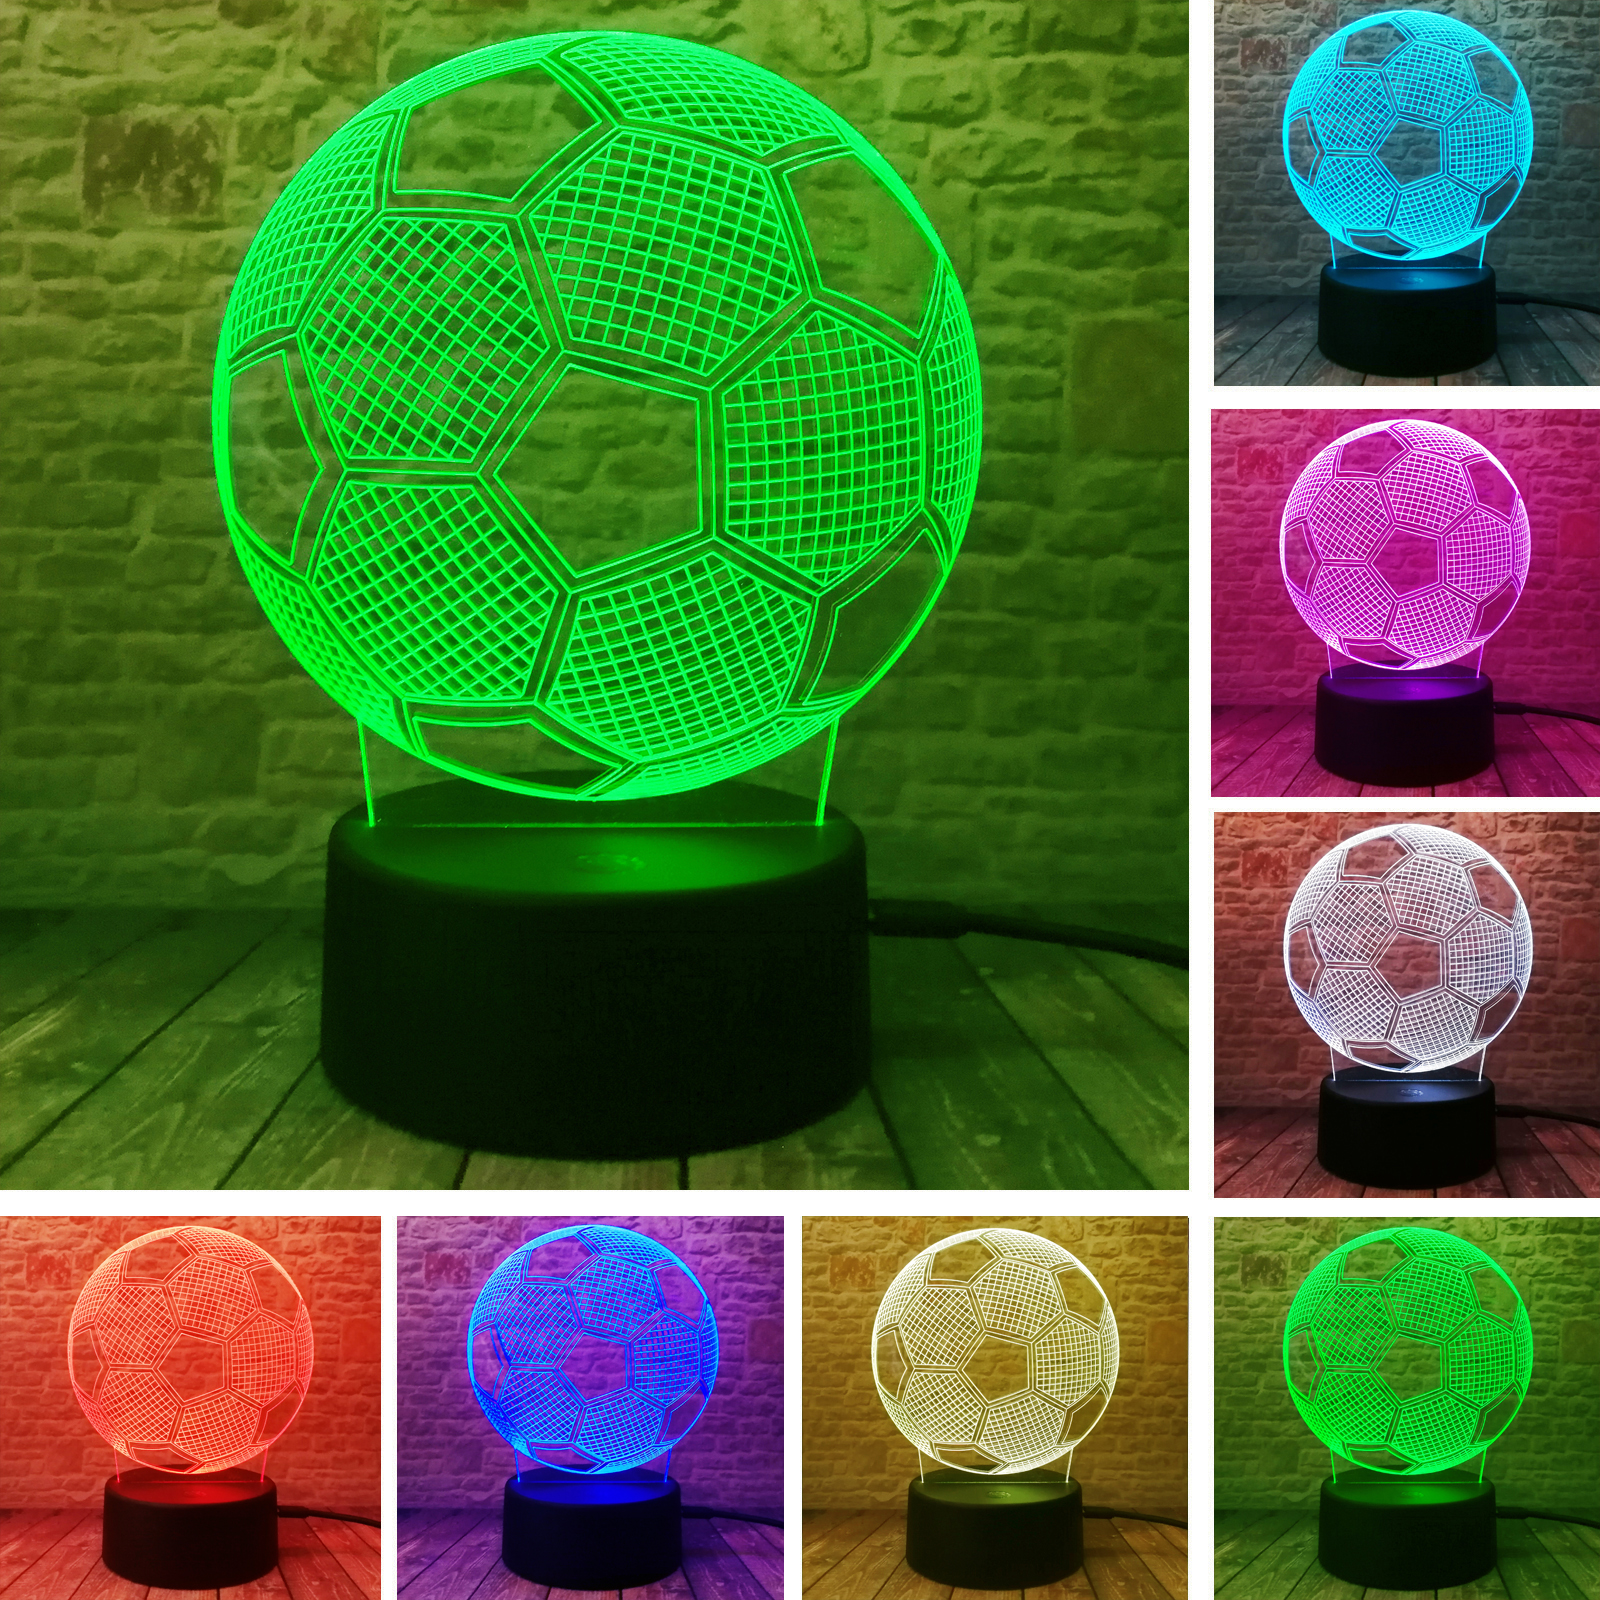 3D Stylish LED Lamp Touch Sensor Football Shaped 3D Night Light For Soccer Sports Fans Best Gift 7 Color Changing Lighting Lamp